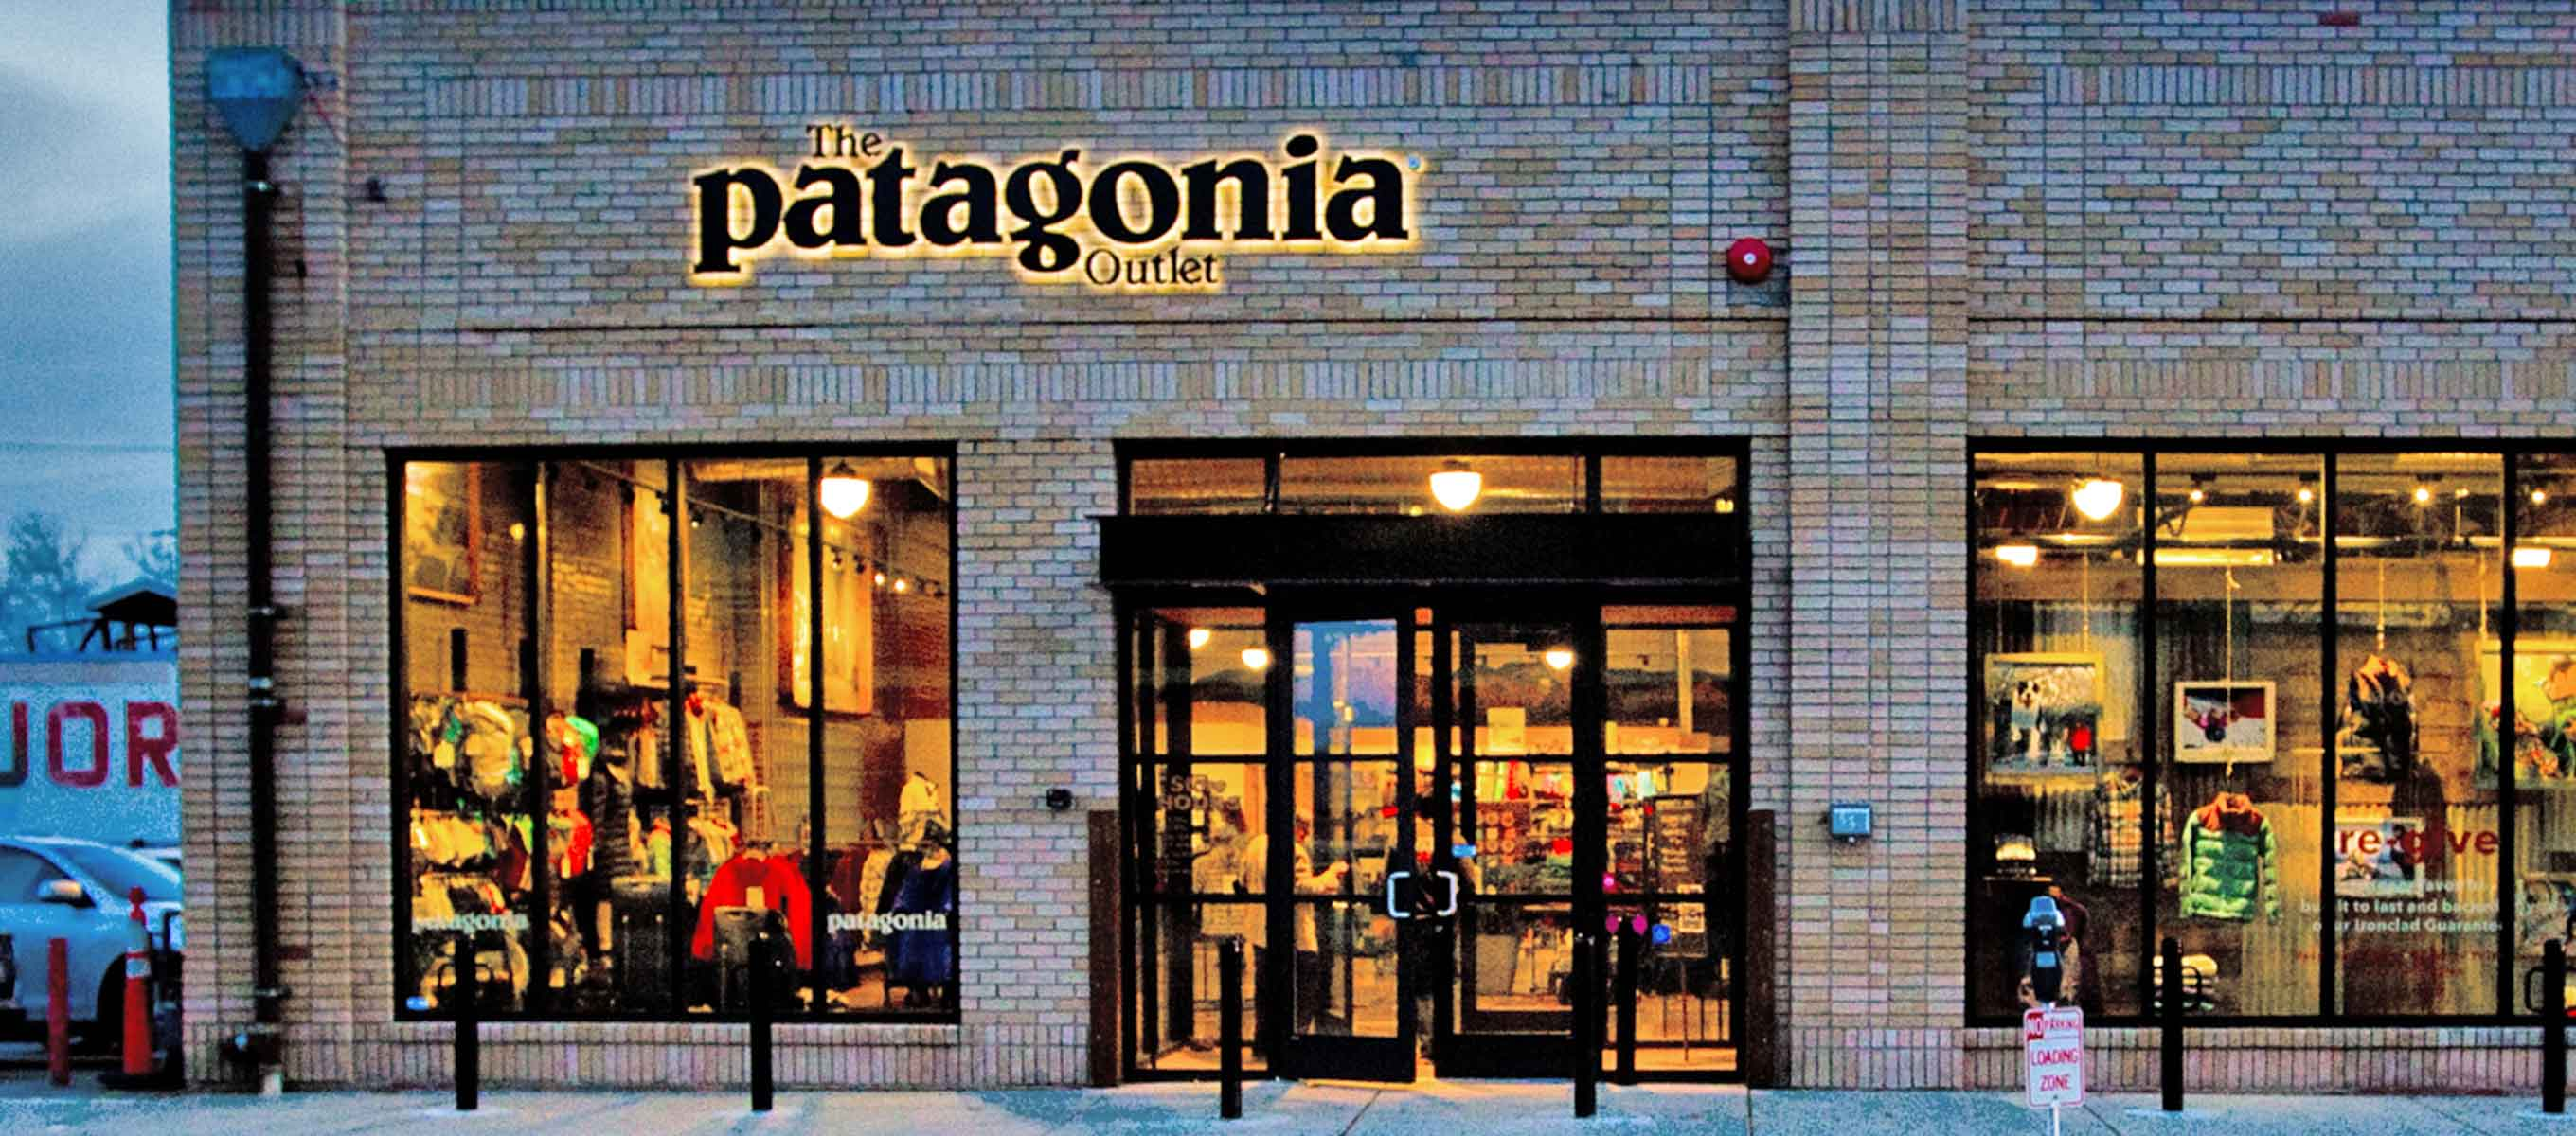 0f5a2c9712 Patagonia Outlet Reno - Outdoor Clothing Outlet, Reno, NV